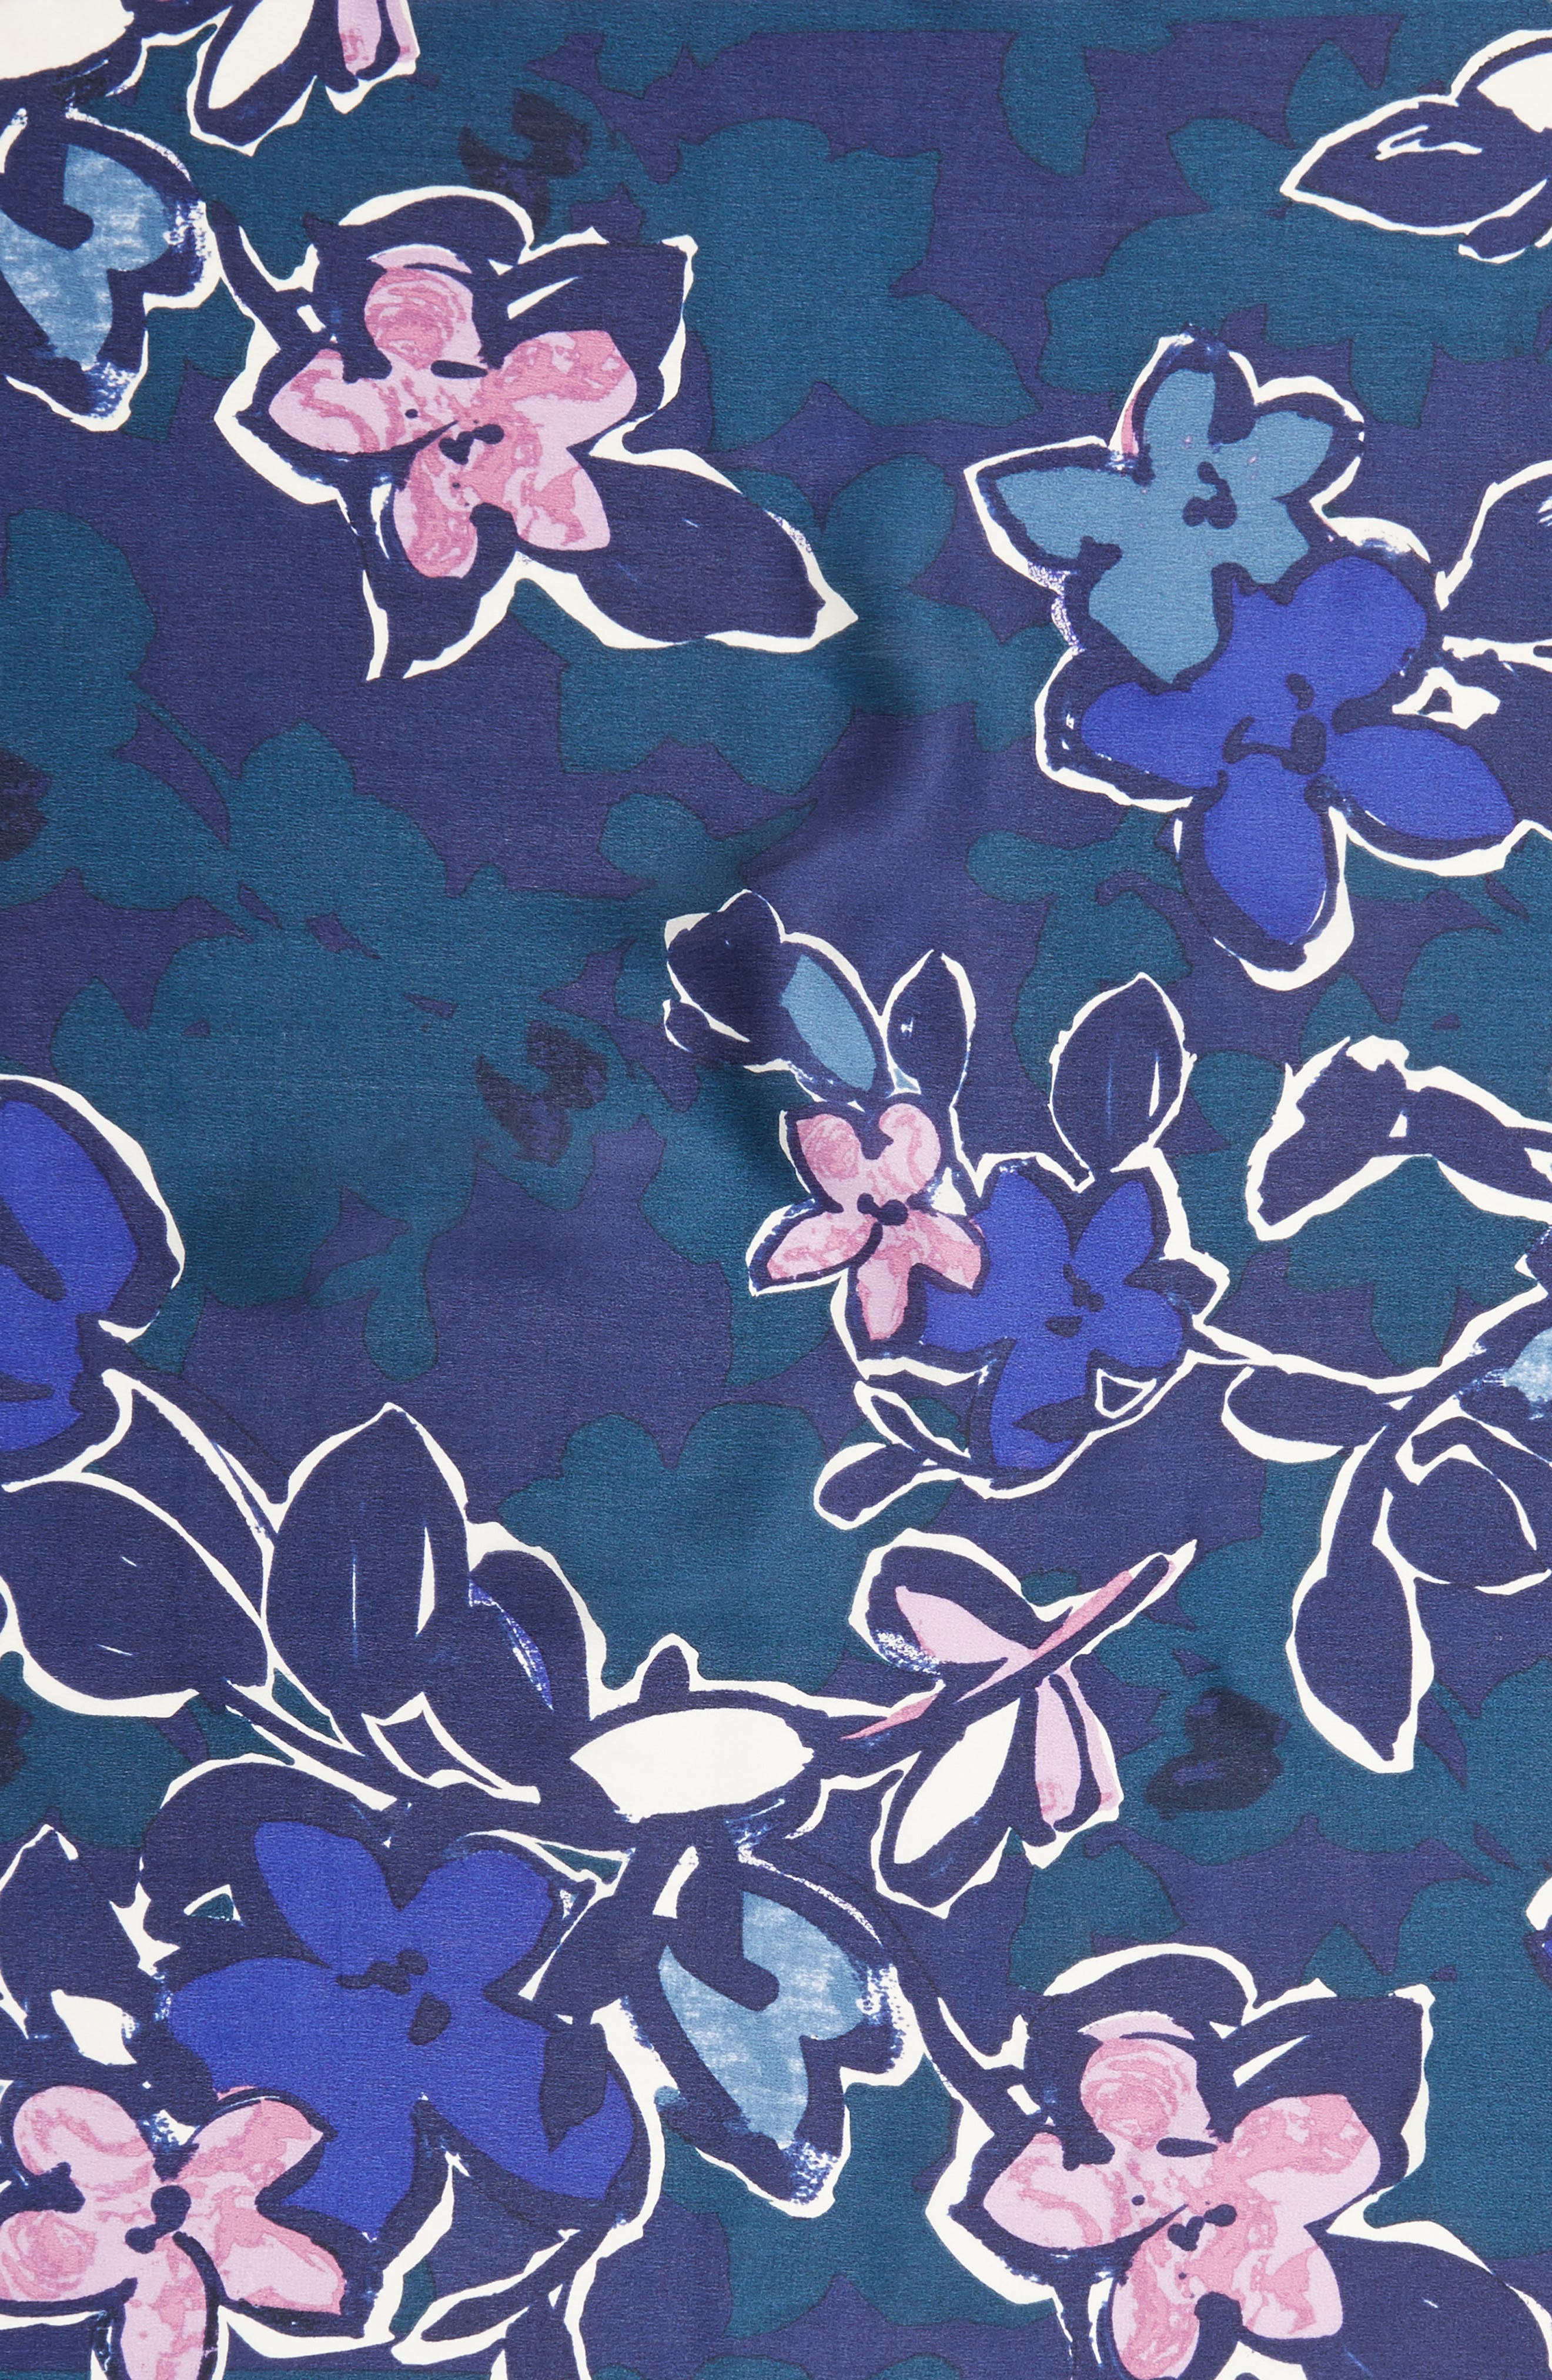 Bloom Floral Silk Square Scarf,                             Alternate thumbnail 4, color,                             Navy Combo